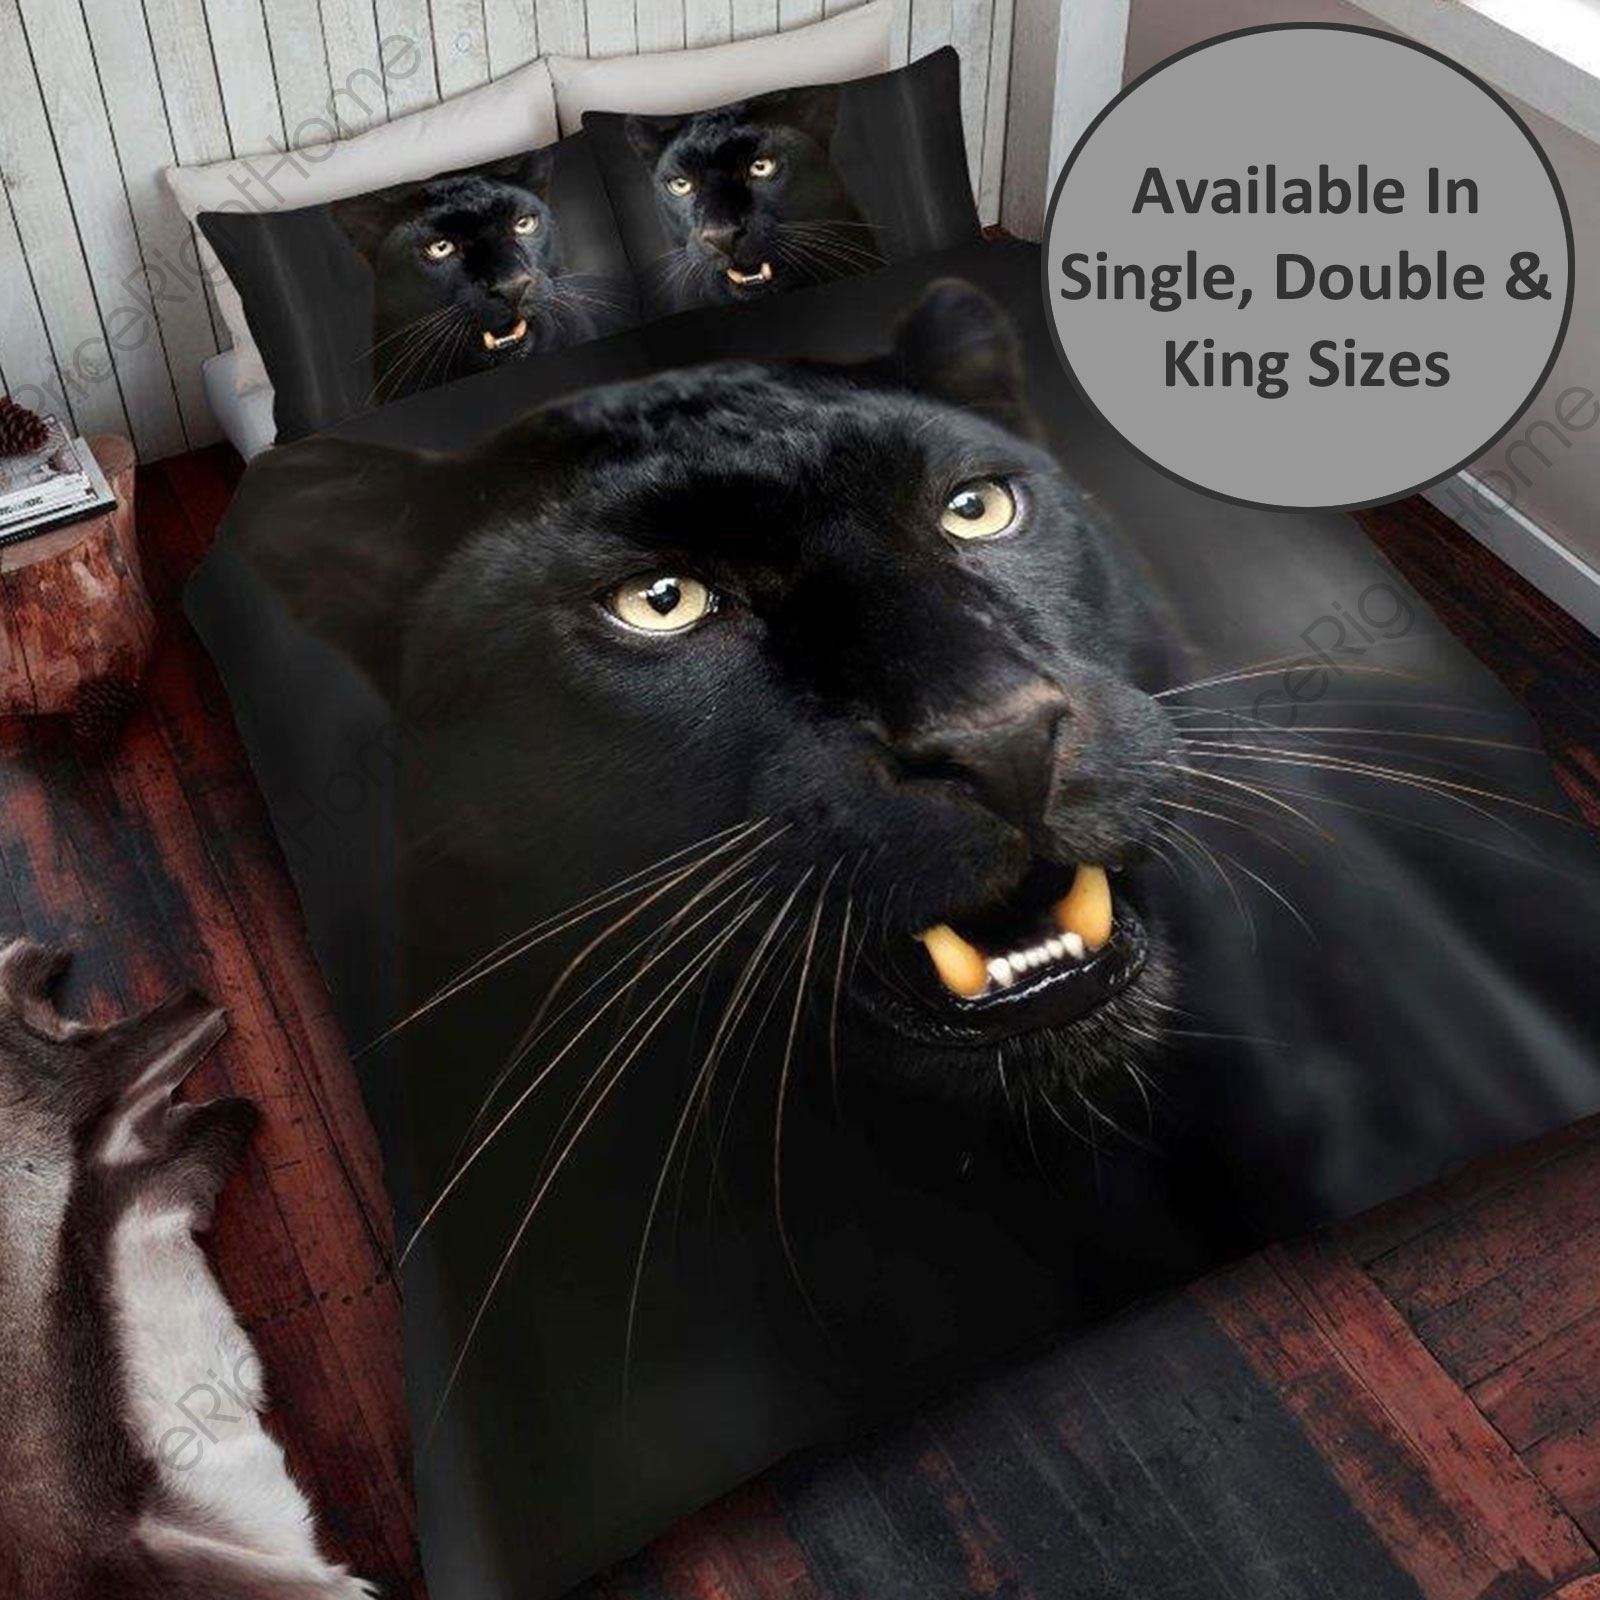 Black Panther Duvet Cover Sets Available In Single Double